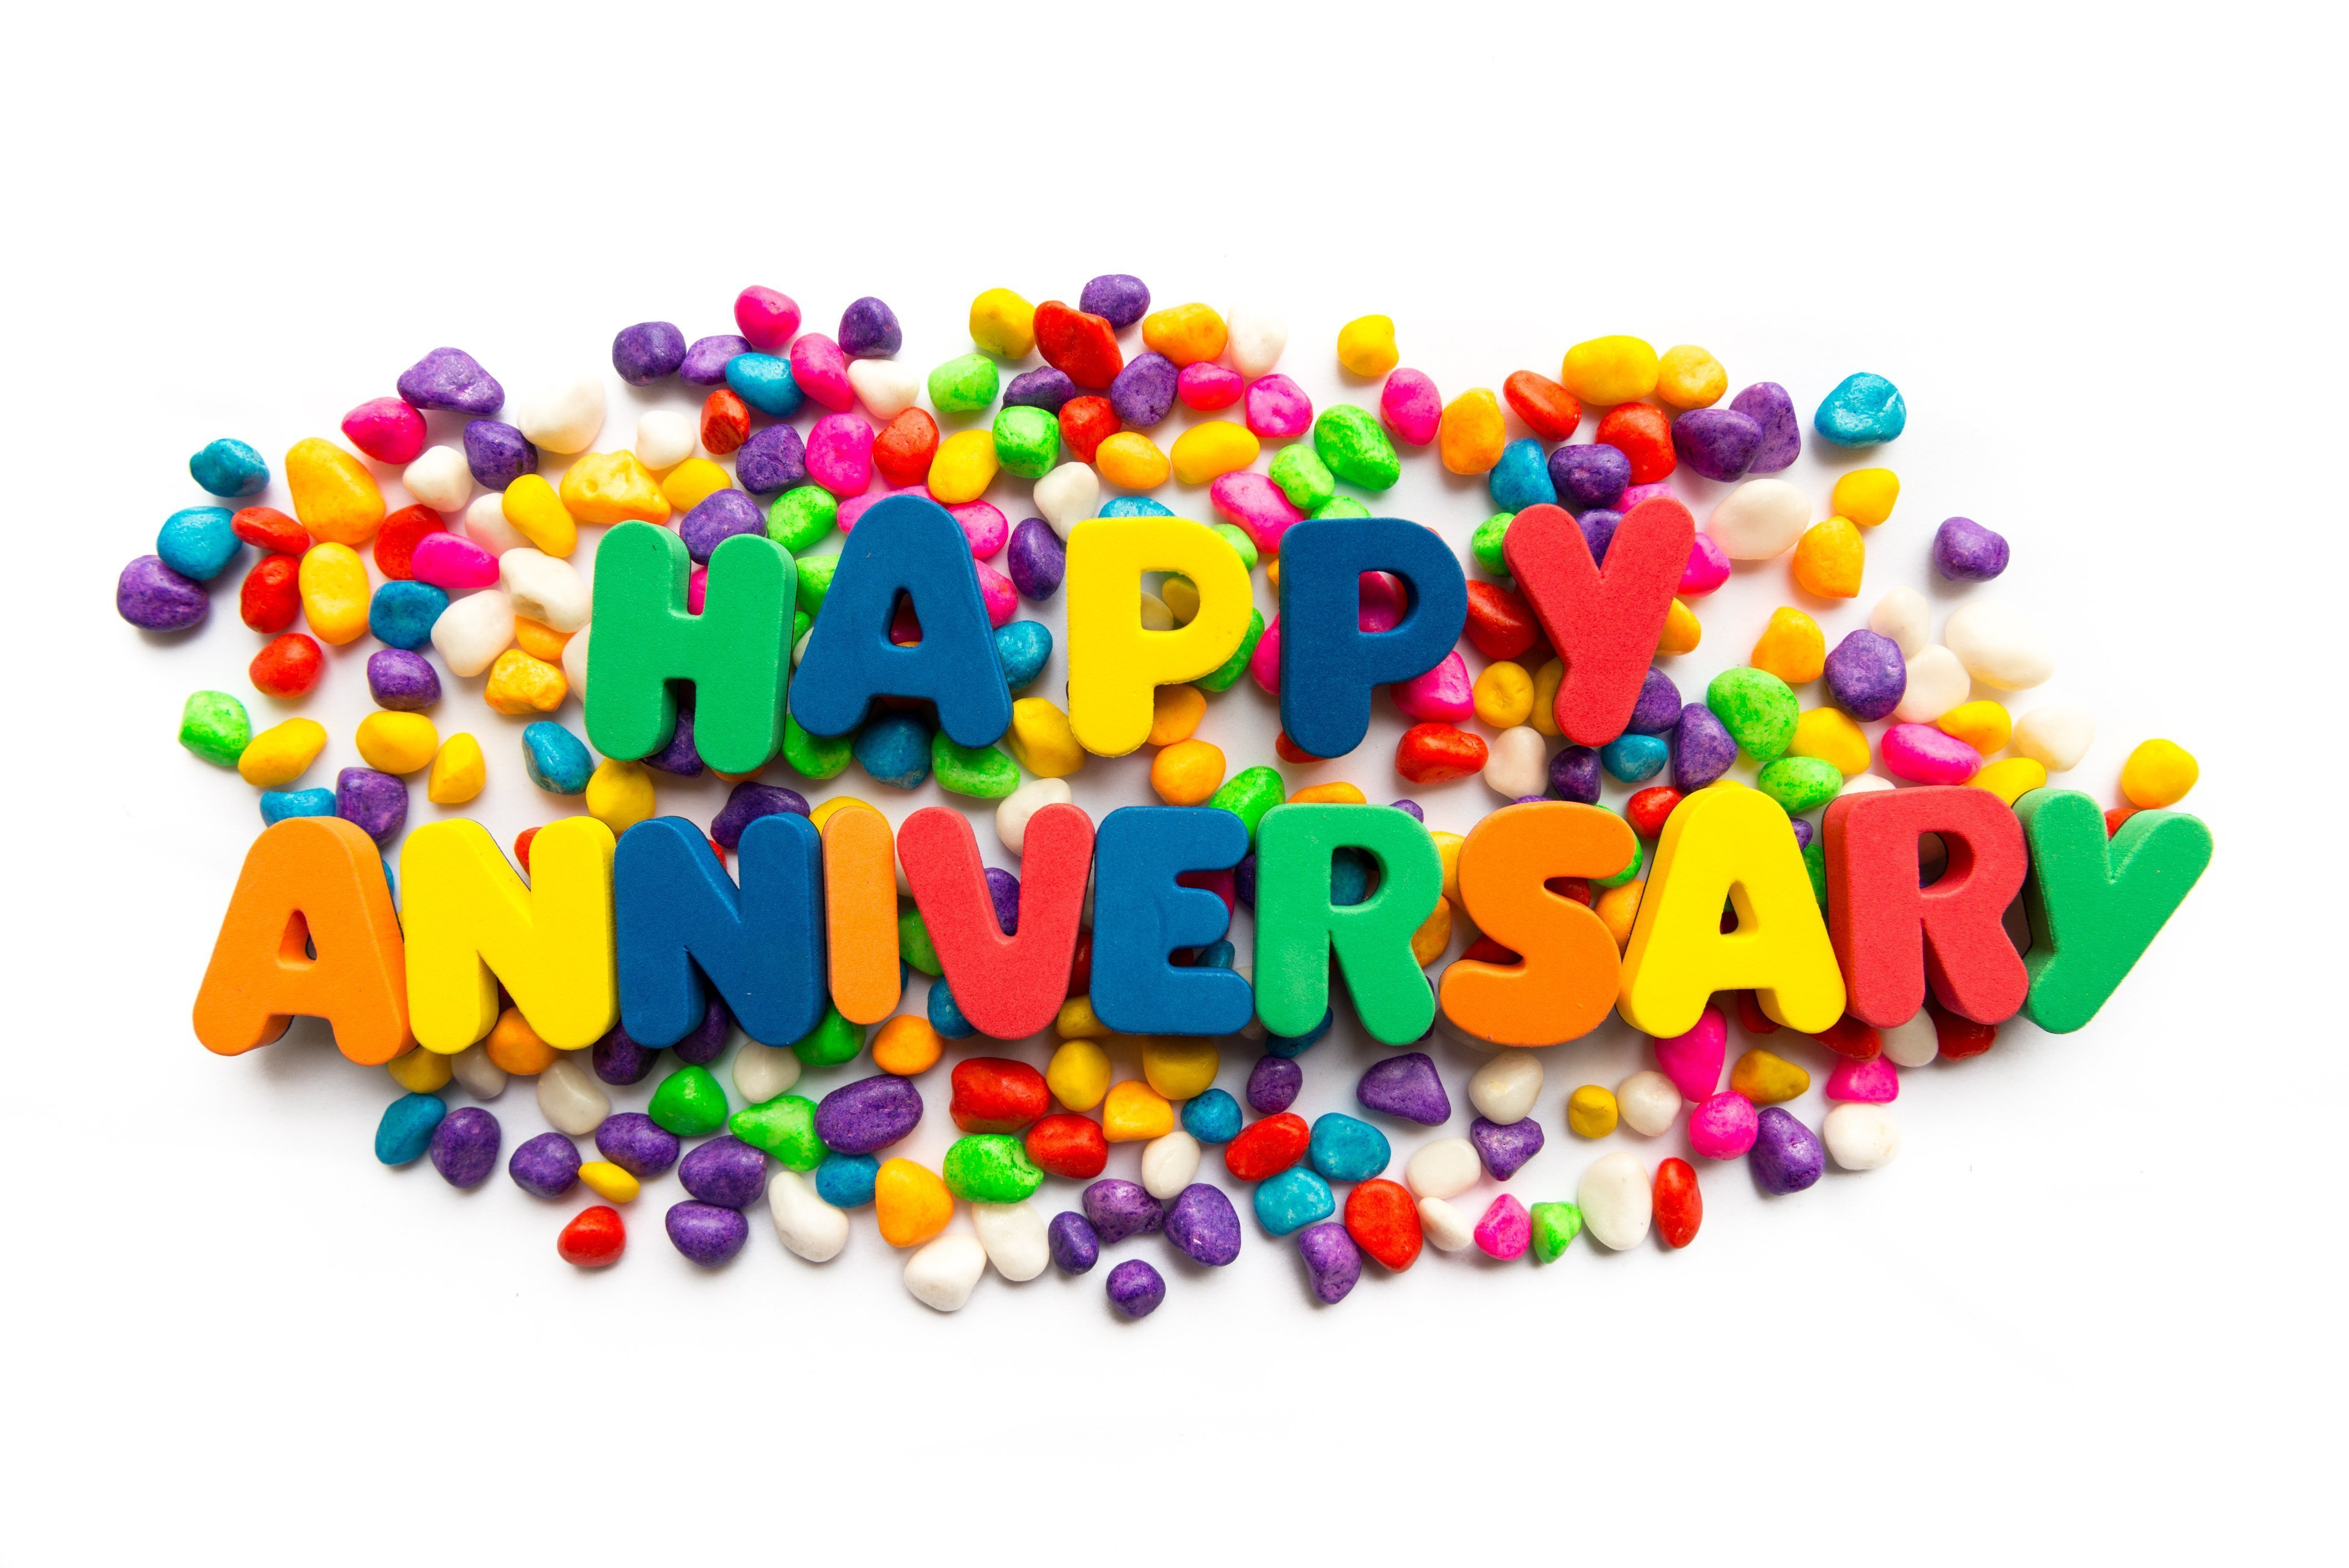 Close-Up photo of a colorful Happy Anniversary text | Photo: Getty Images